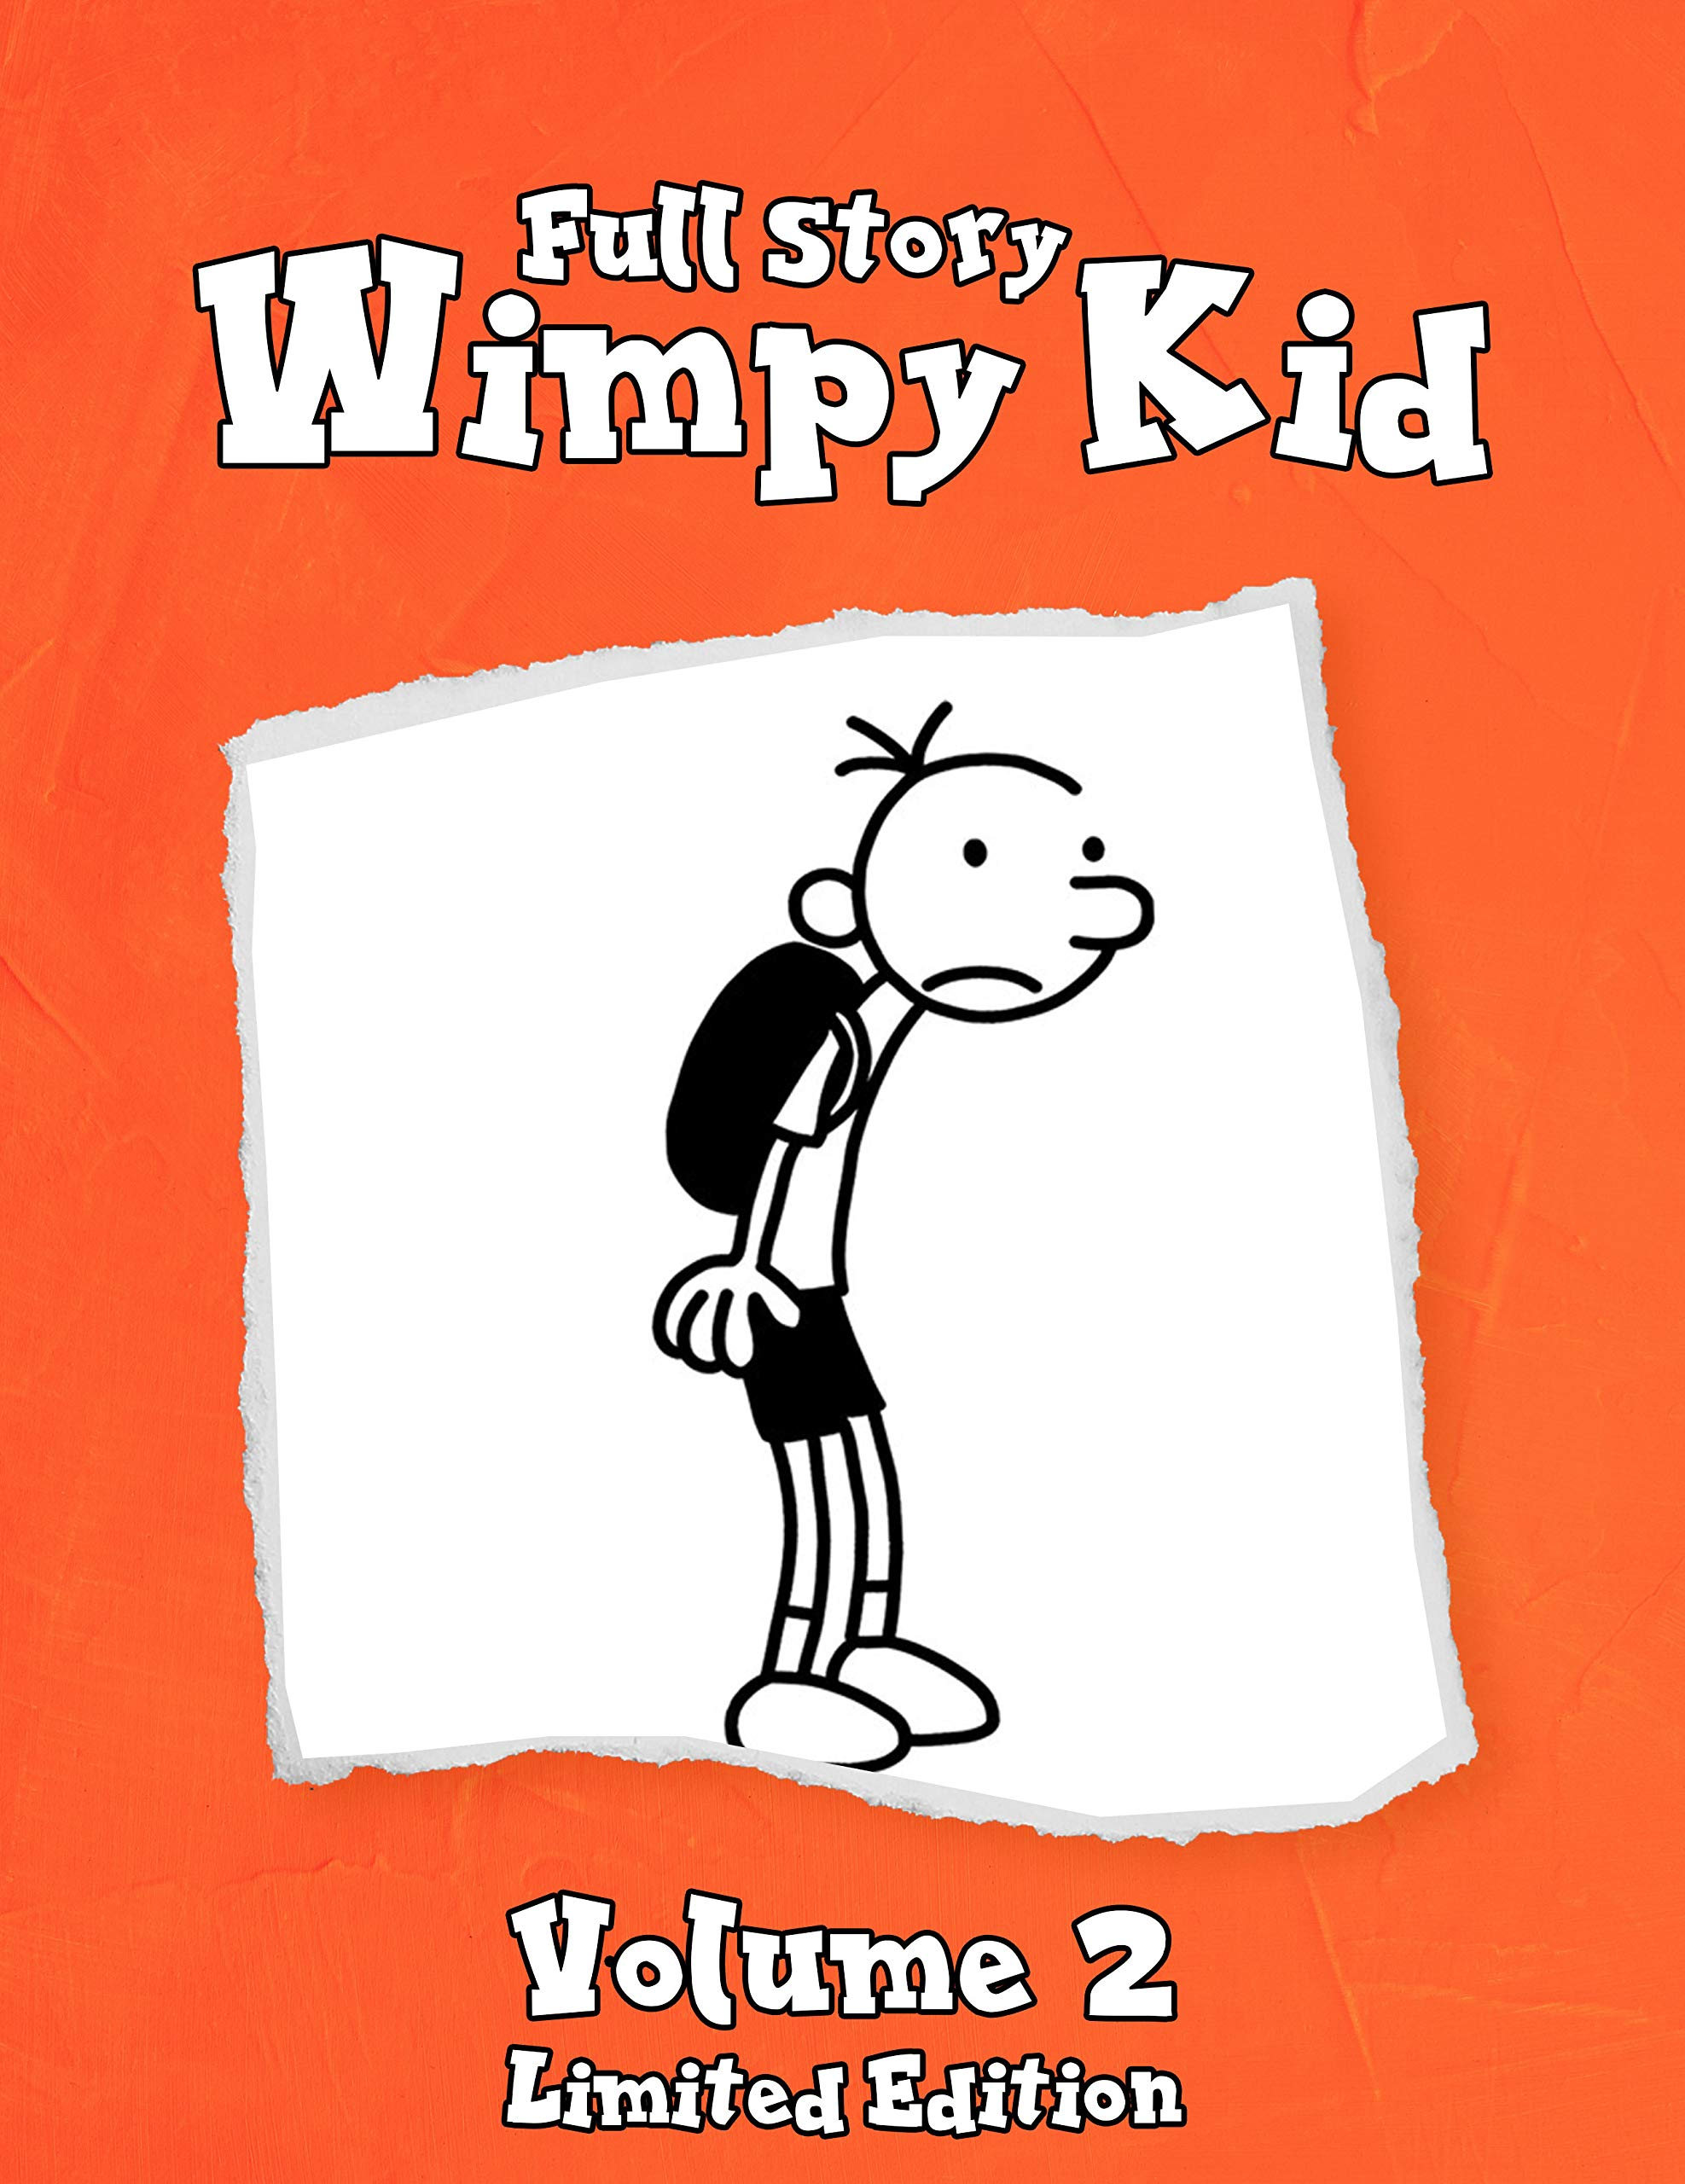 Full Story Wimpy Kid Funny Childrens Books Vol 2: Wimpy Kid Limited Edition - Diary Rodrick rules